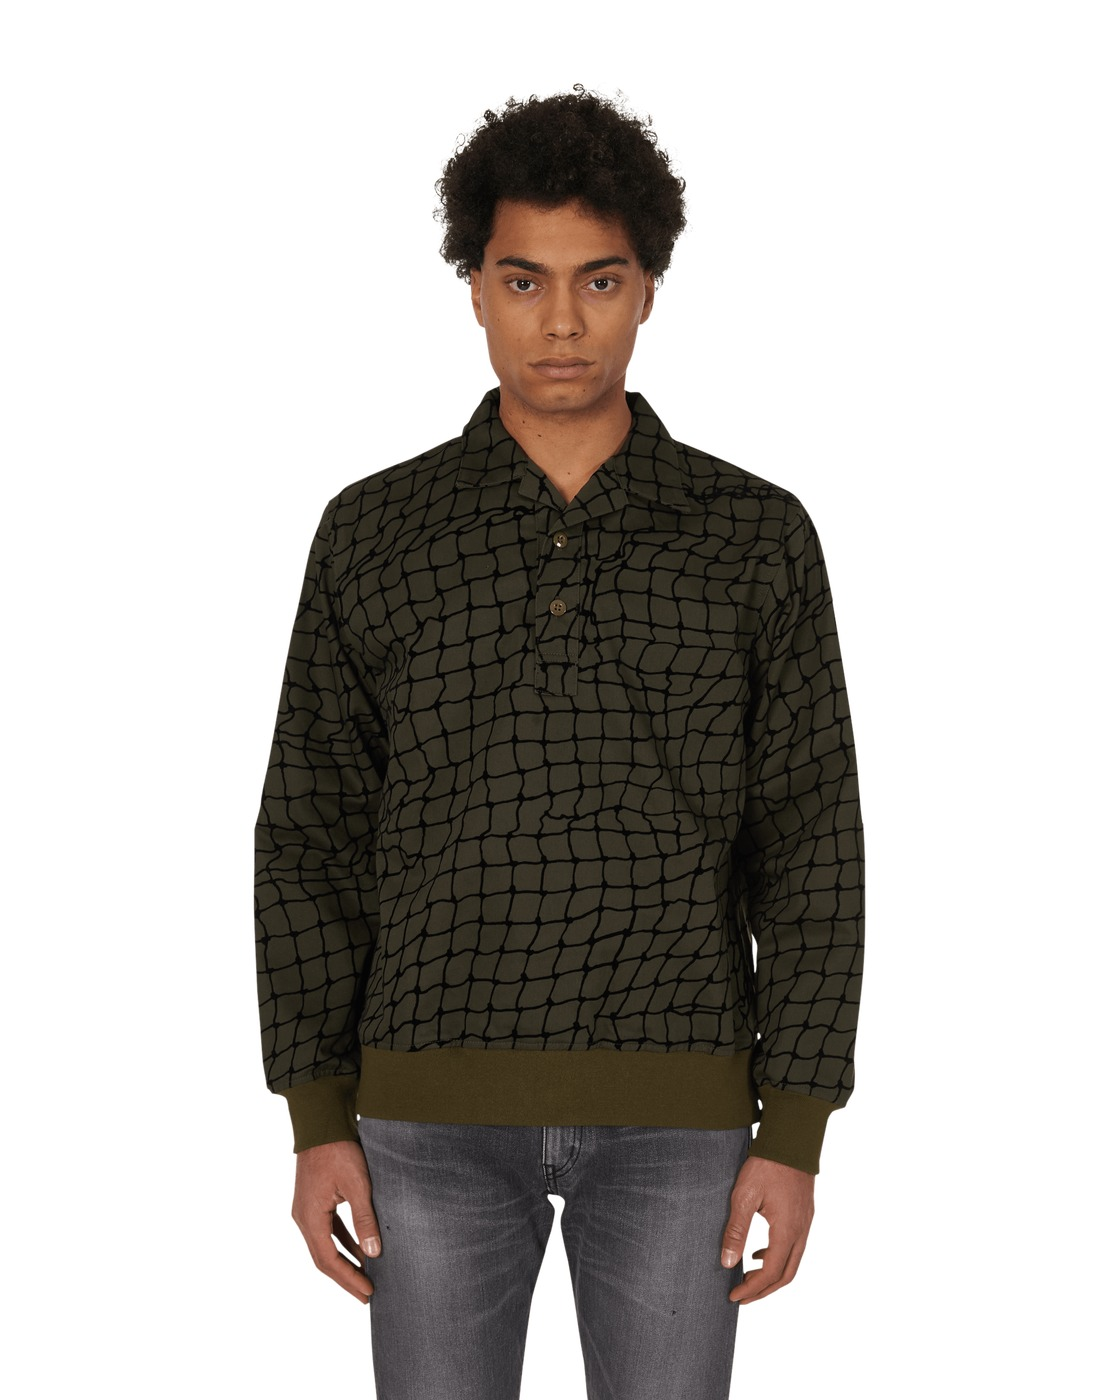 Photo: Neighborhood Flock Pull C Shirt Sweatshirt Olive Drab